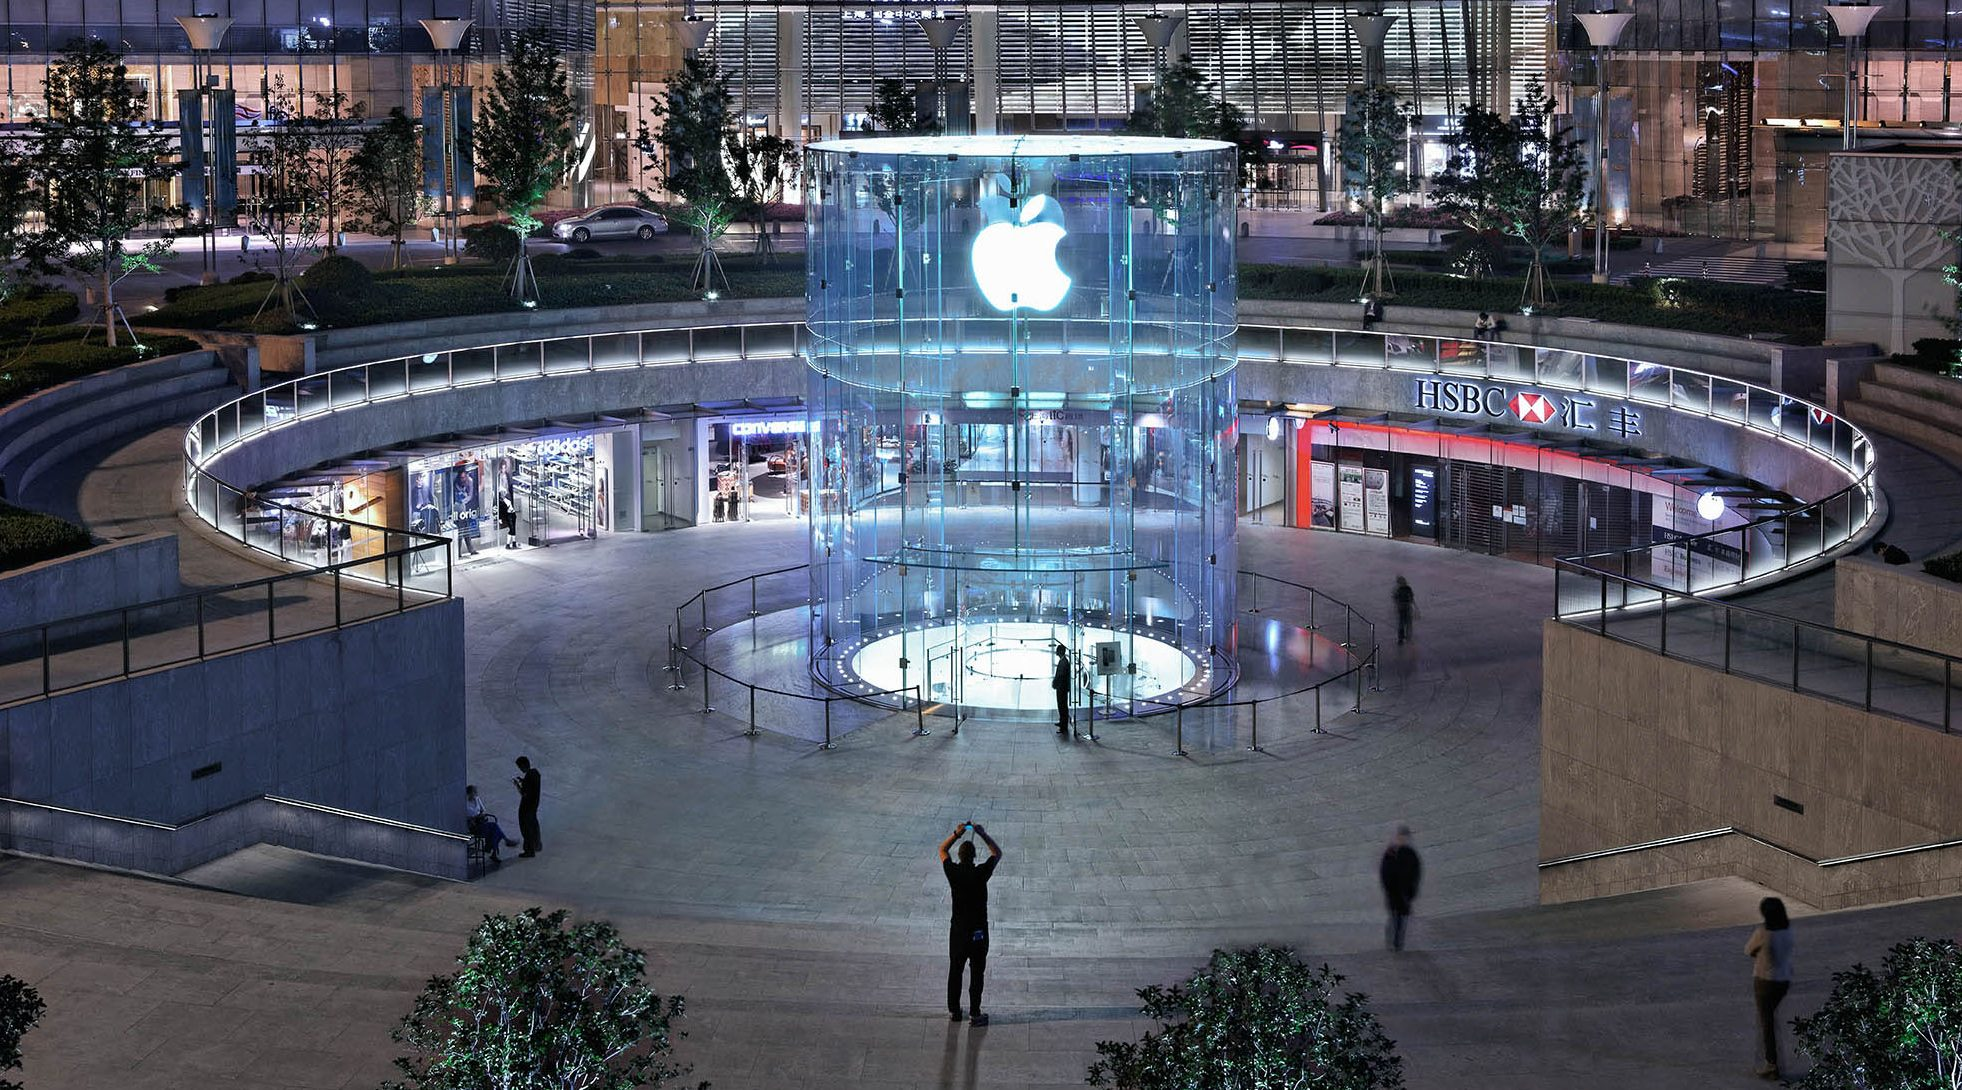 Architectural photography of retail stores and malls in China and Asia